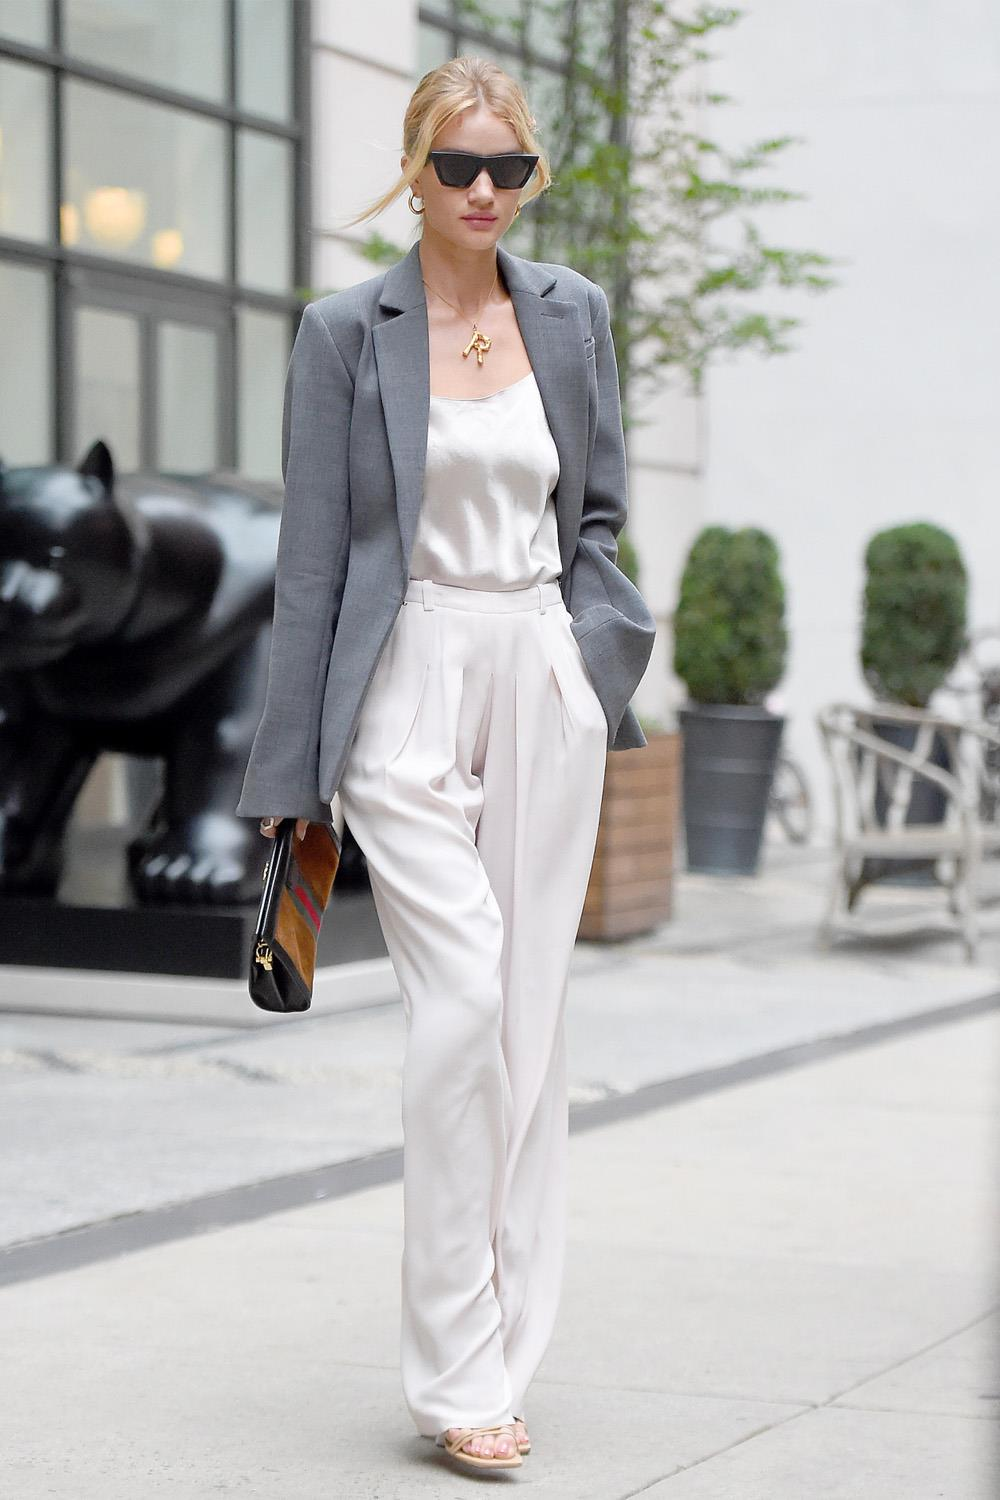 Back to office: ideas de looks para volver al trabajo con estilo